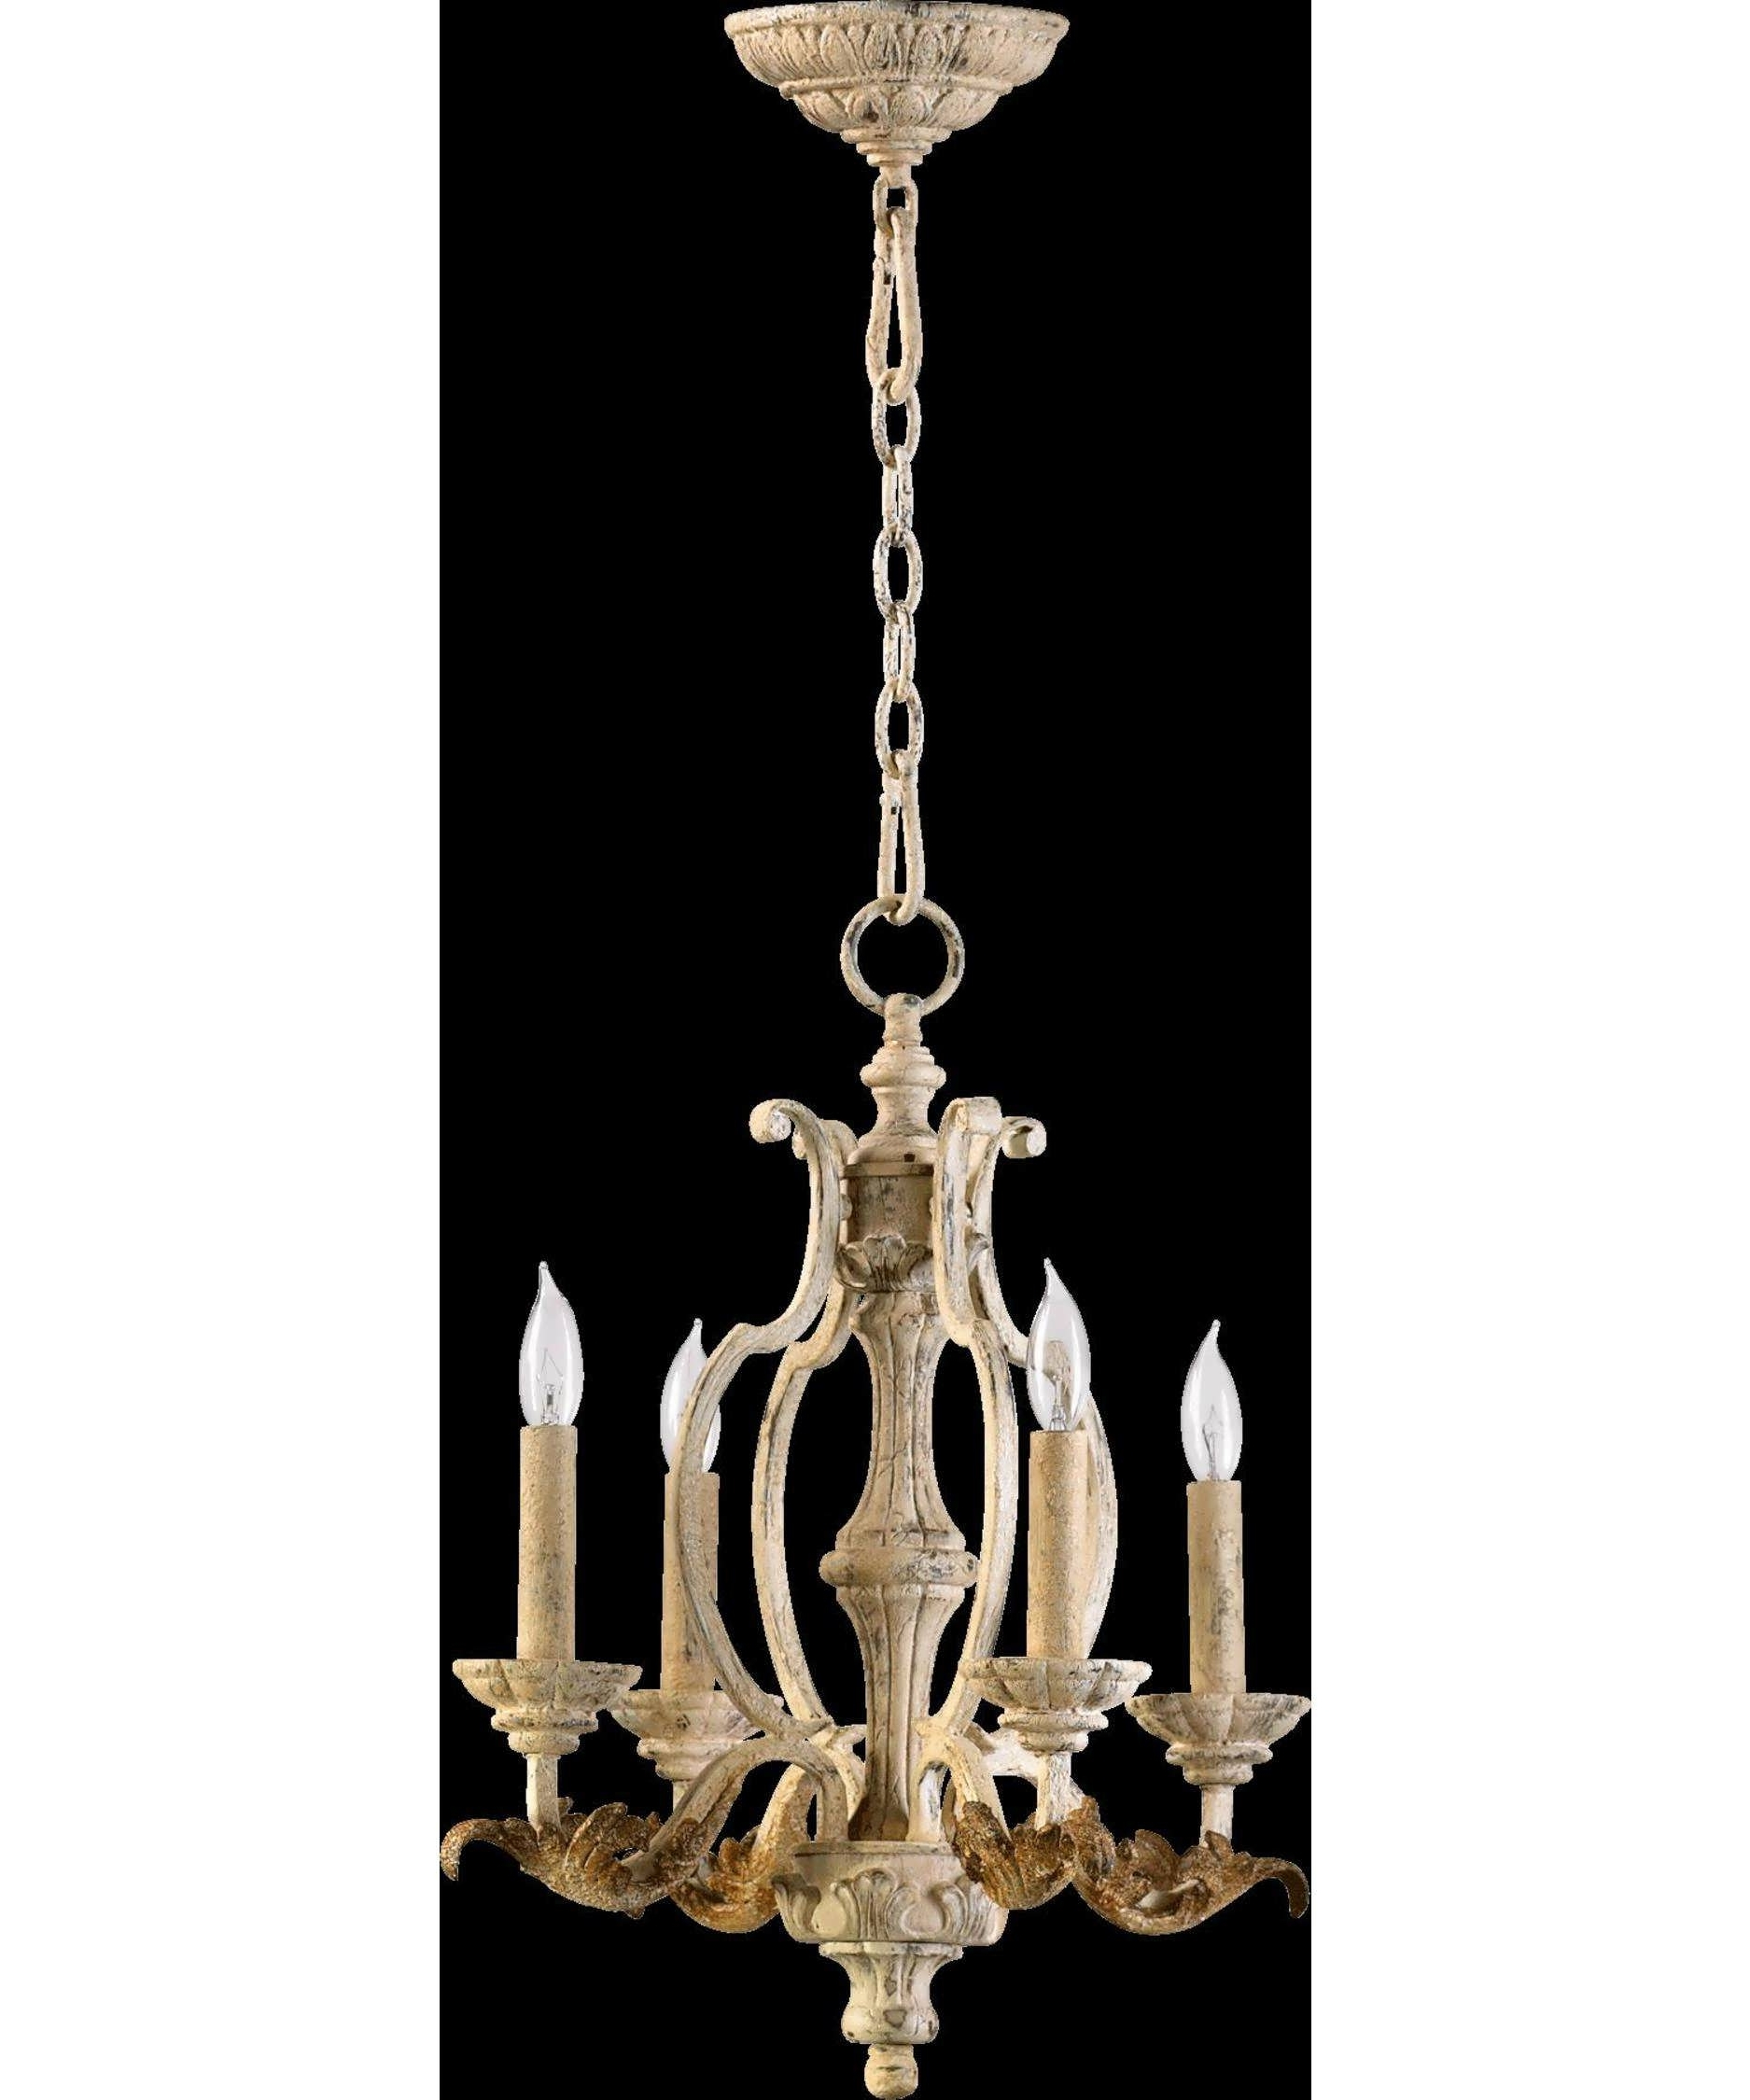 Hanging Candelabra Chandeliers Inside Well Known Chandeliers Design : Marvelous Confortable Lighting Wonderful Candle (View 15 of 20)